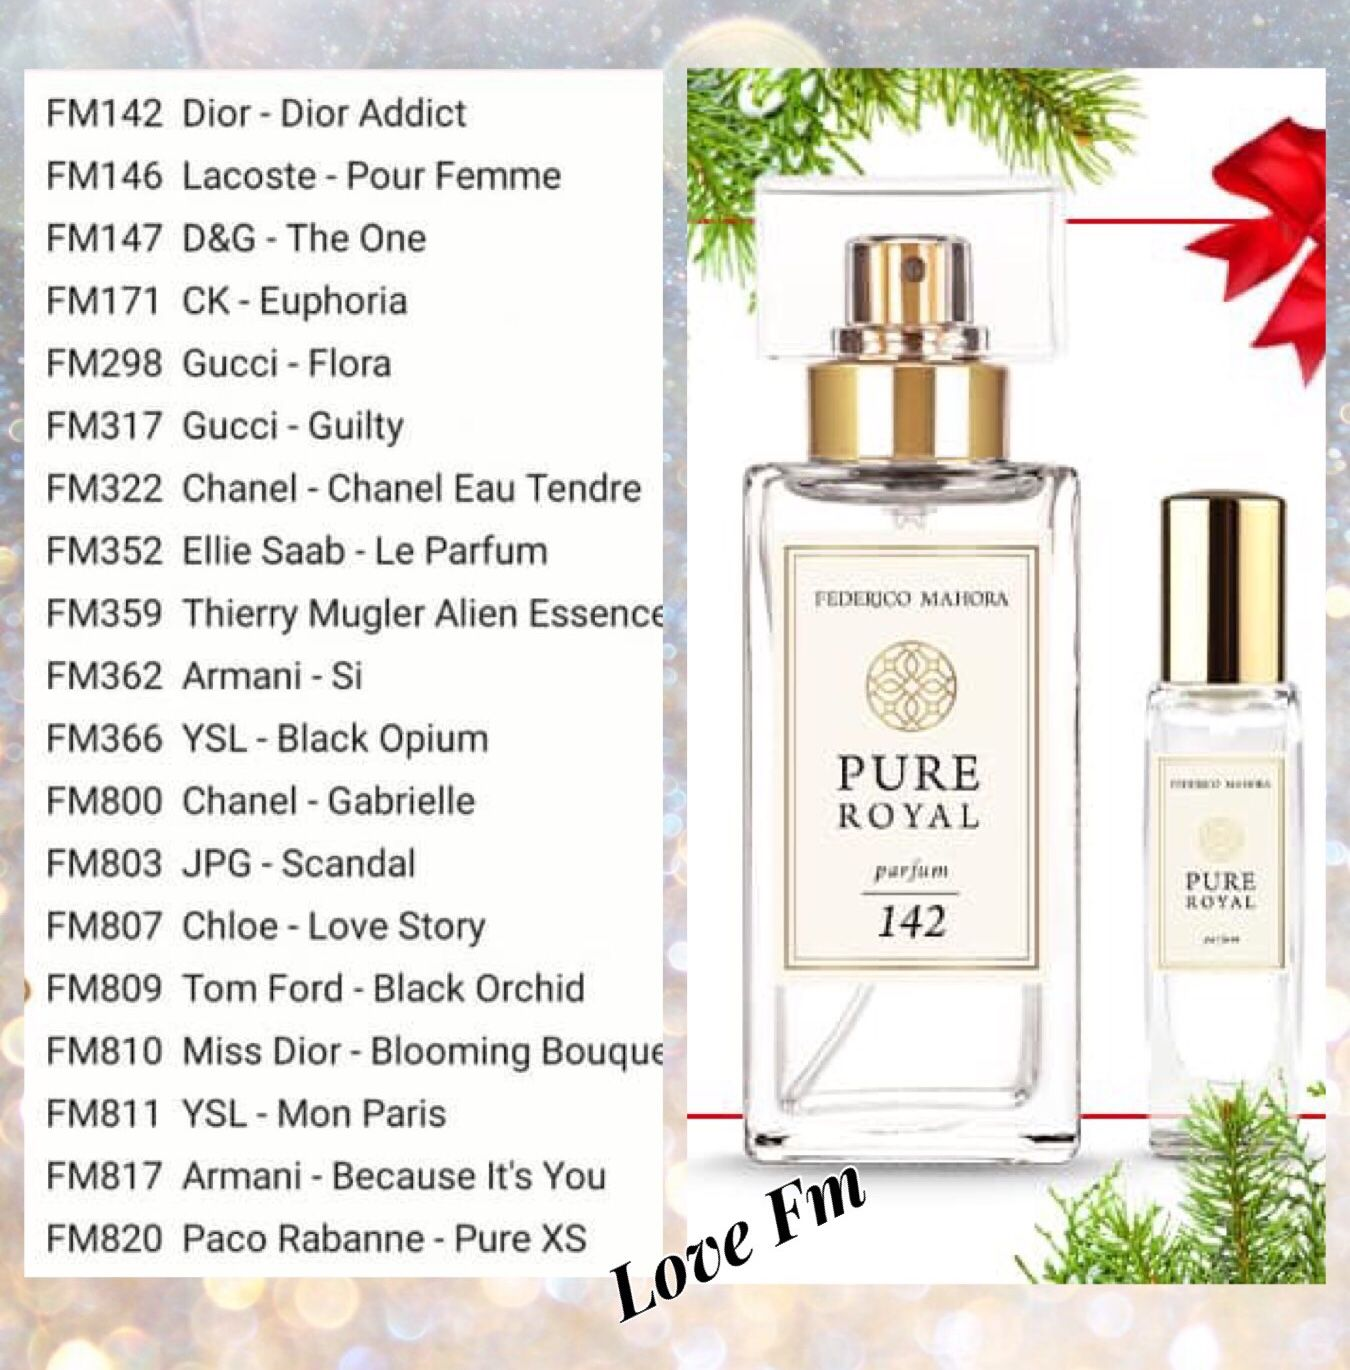 Pin by Sitilda on fm world in 2020 | Perfume gift sets